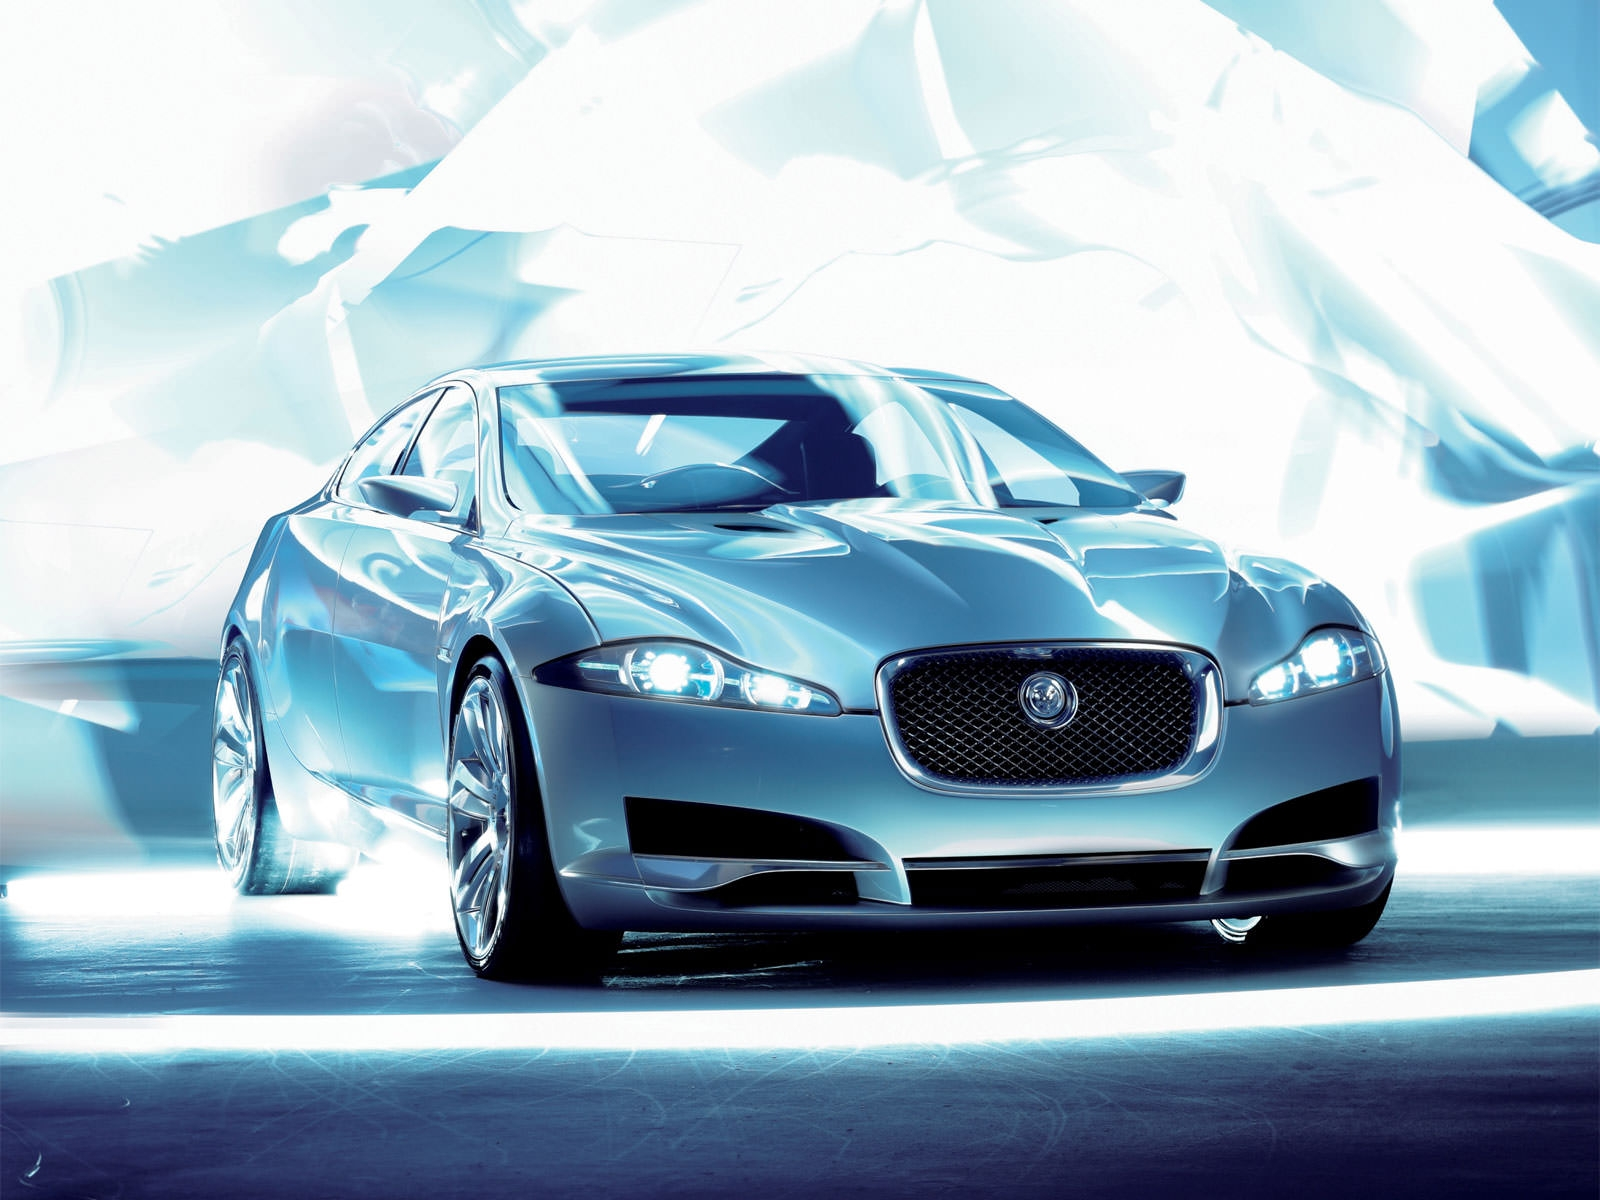 Jaguar Car Wallpaper Wallpapers High Quality: 20+ HD Car Desktop Wallpapers